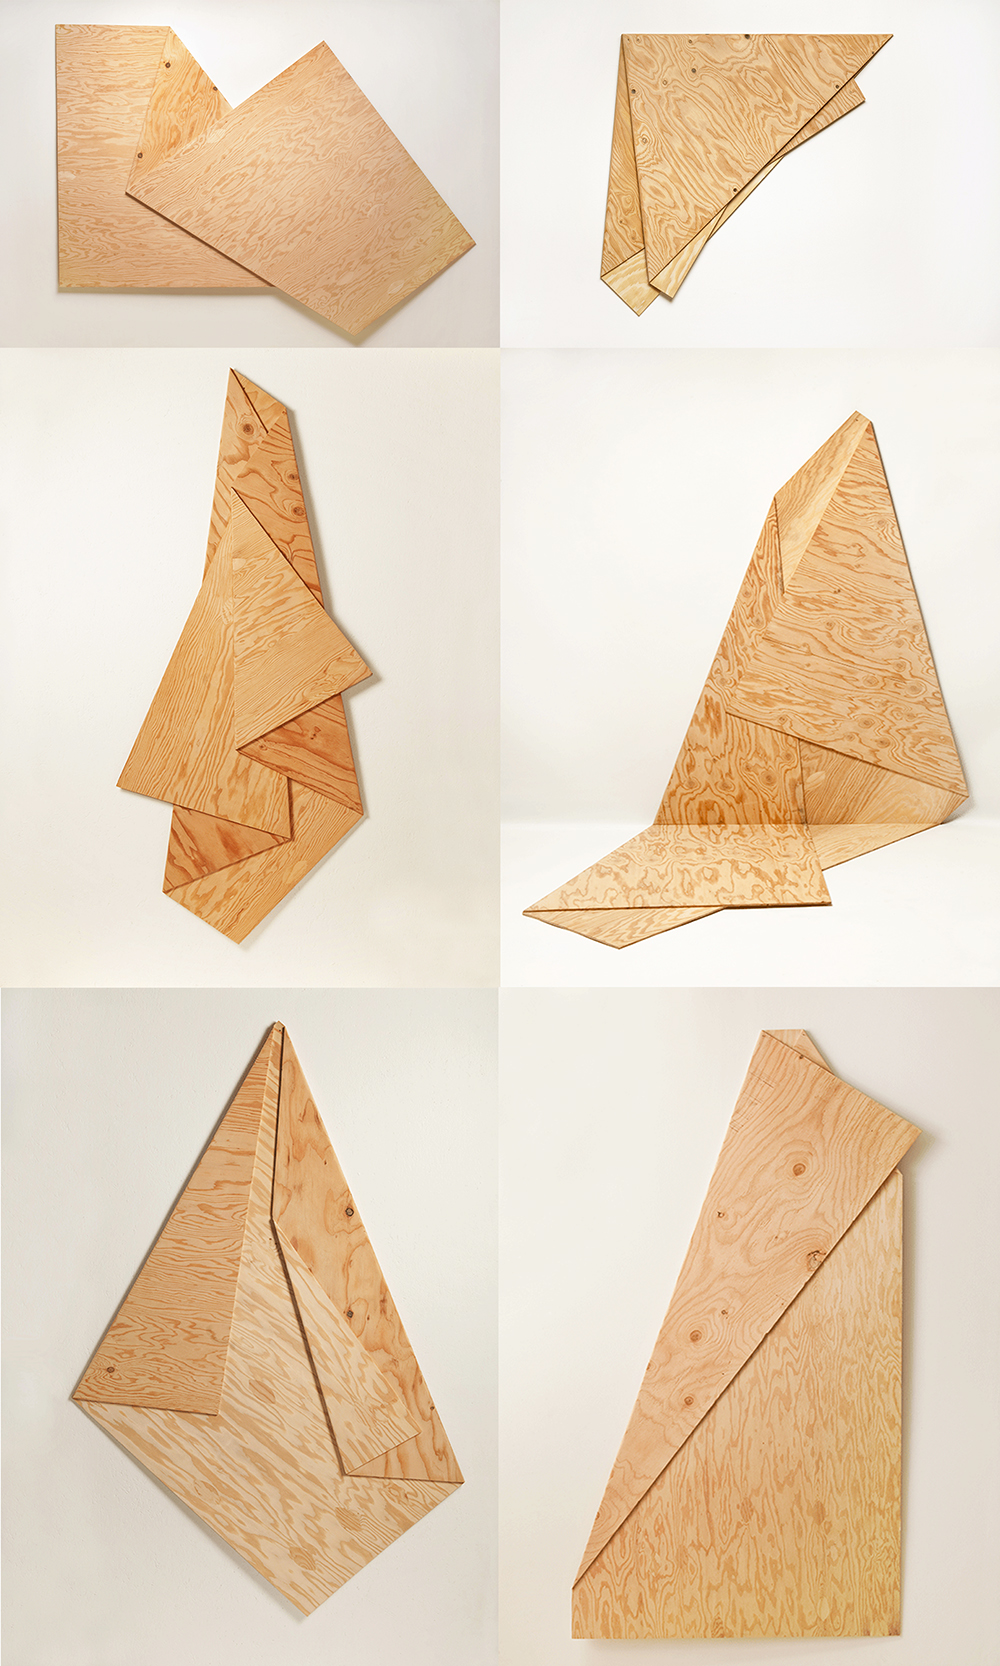 Folded playwood